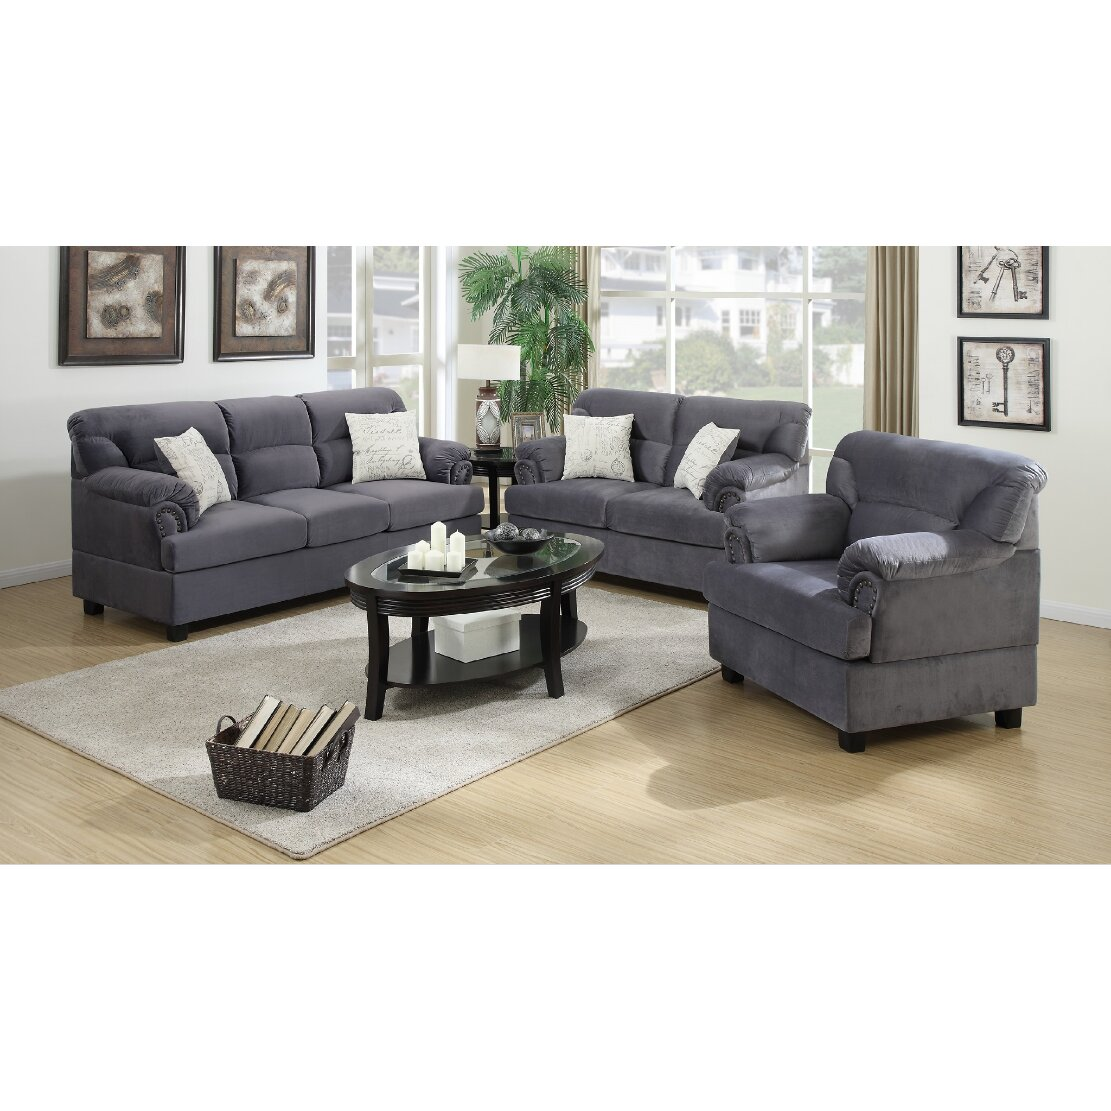 a j homes studio penny 3 piece living room set wayfair